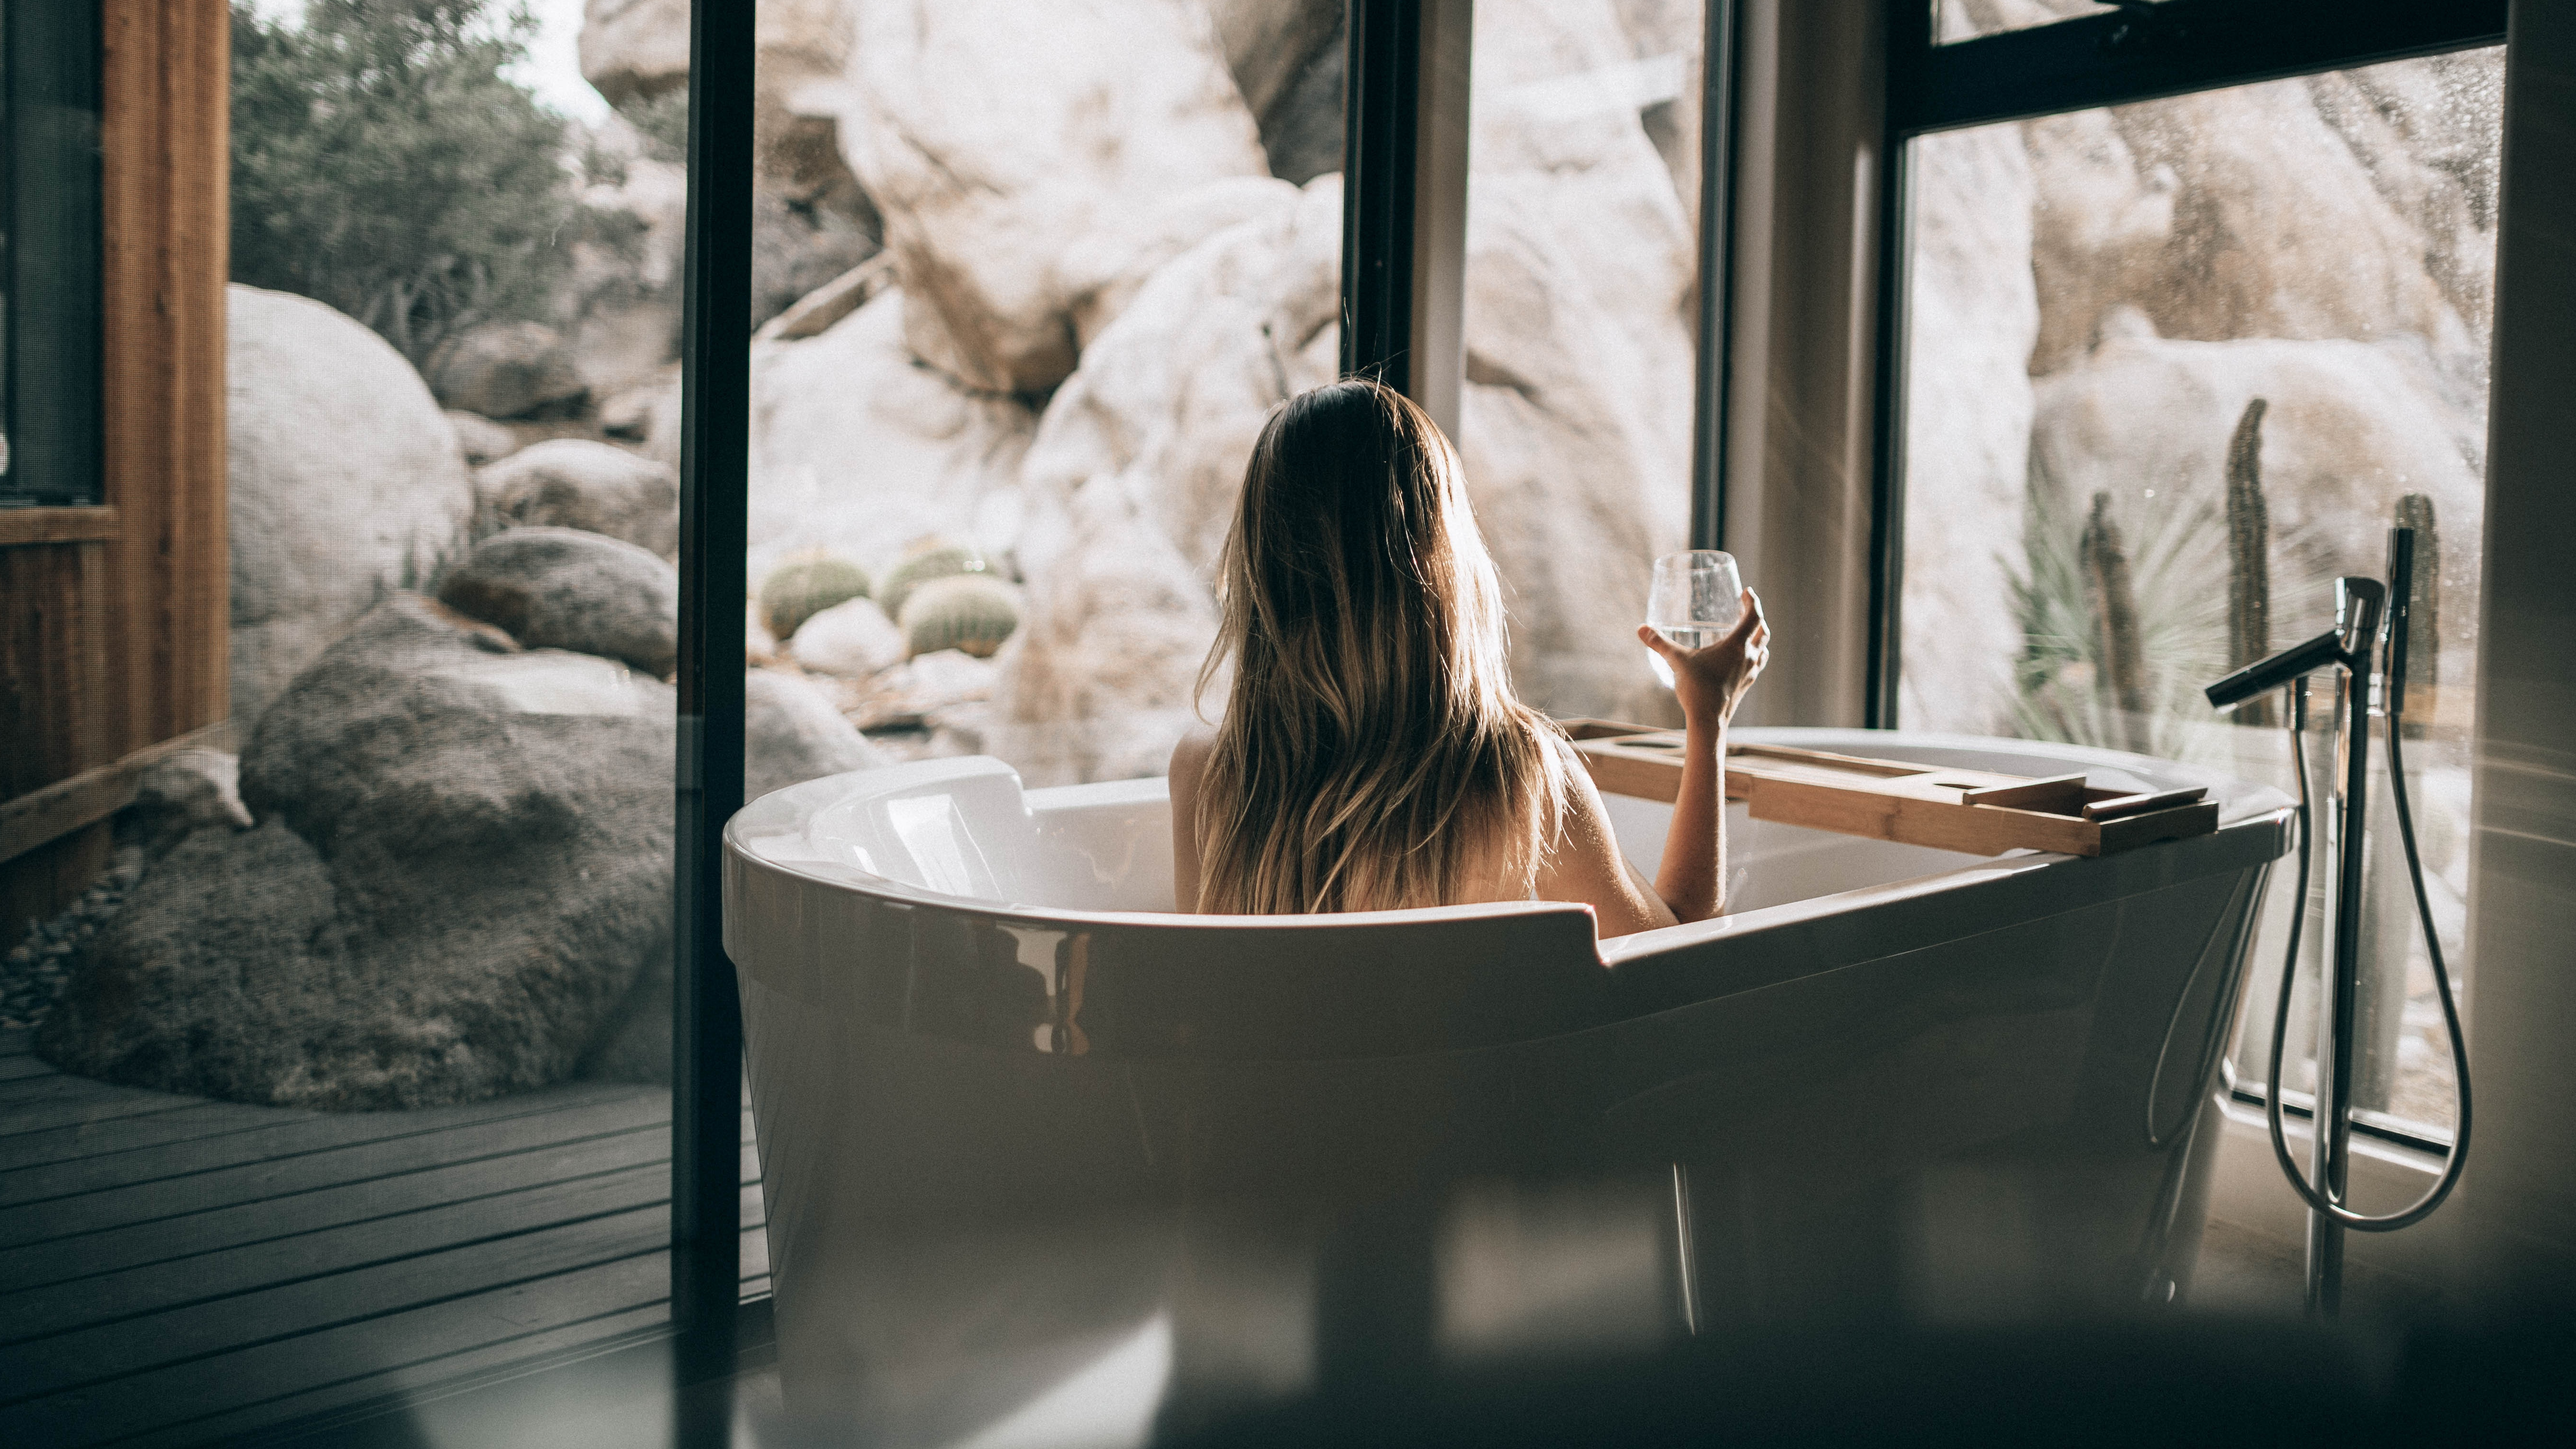 A Long Bath Is Just As Good For You As A Workout According To Science